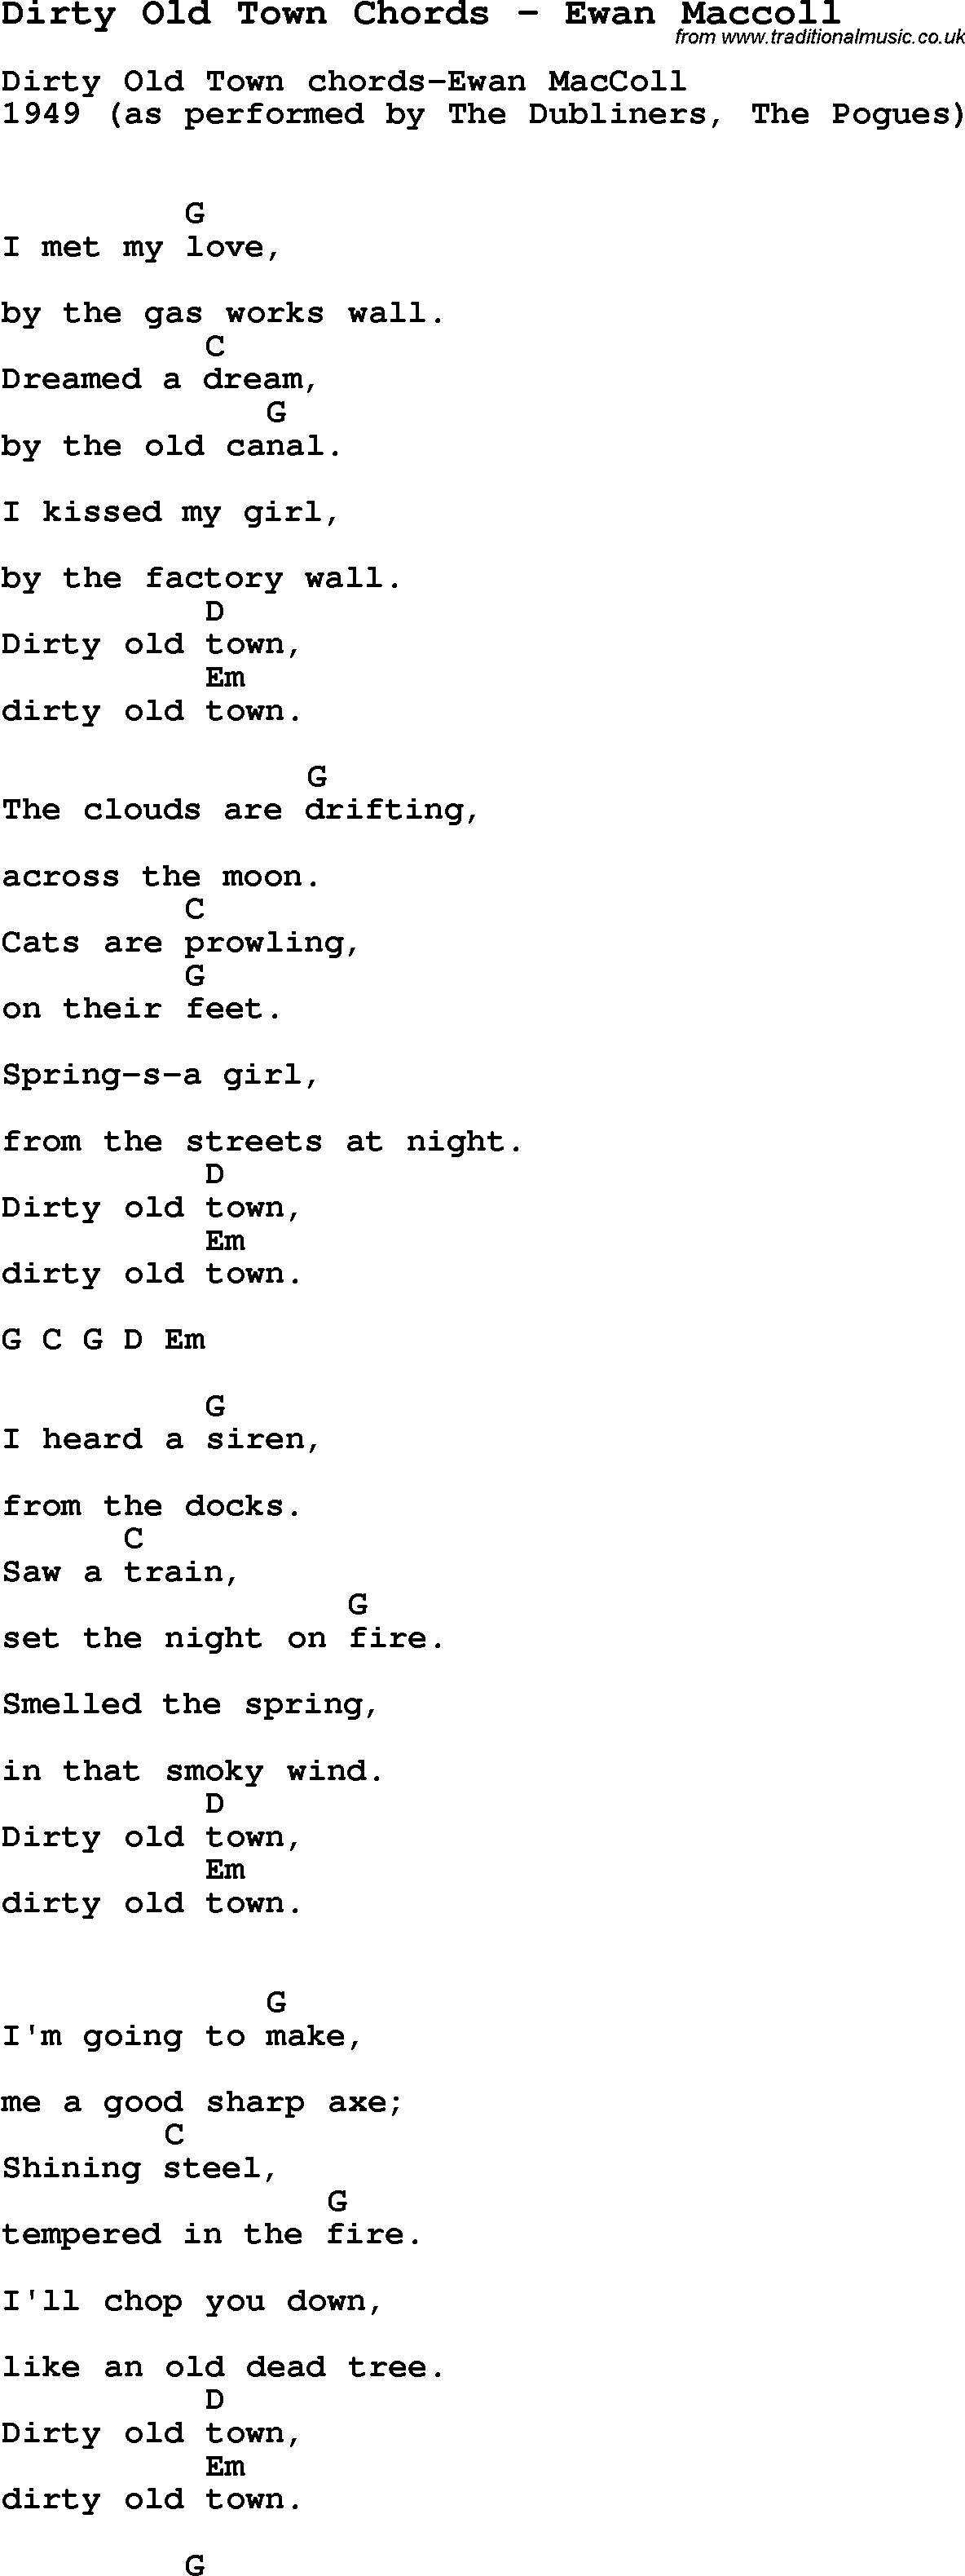 Song dirty old town chords by ewan maccoll song lyric for vocal song dirty old town chords by ewan maccoll with lyrics for vocal performance and accompaniment hexwebz Image collections